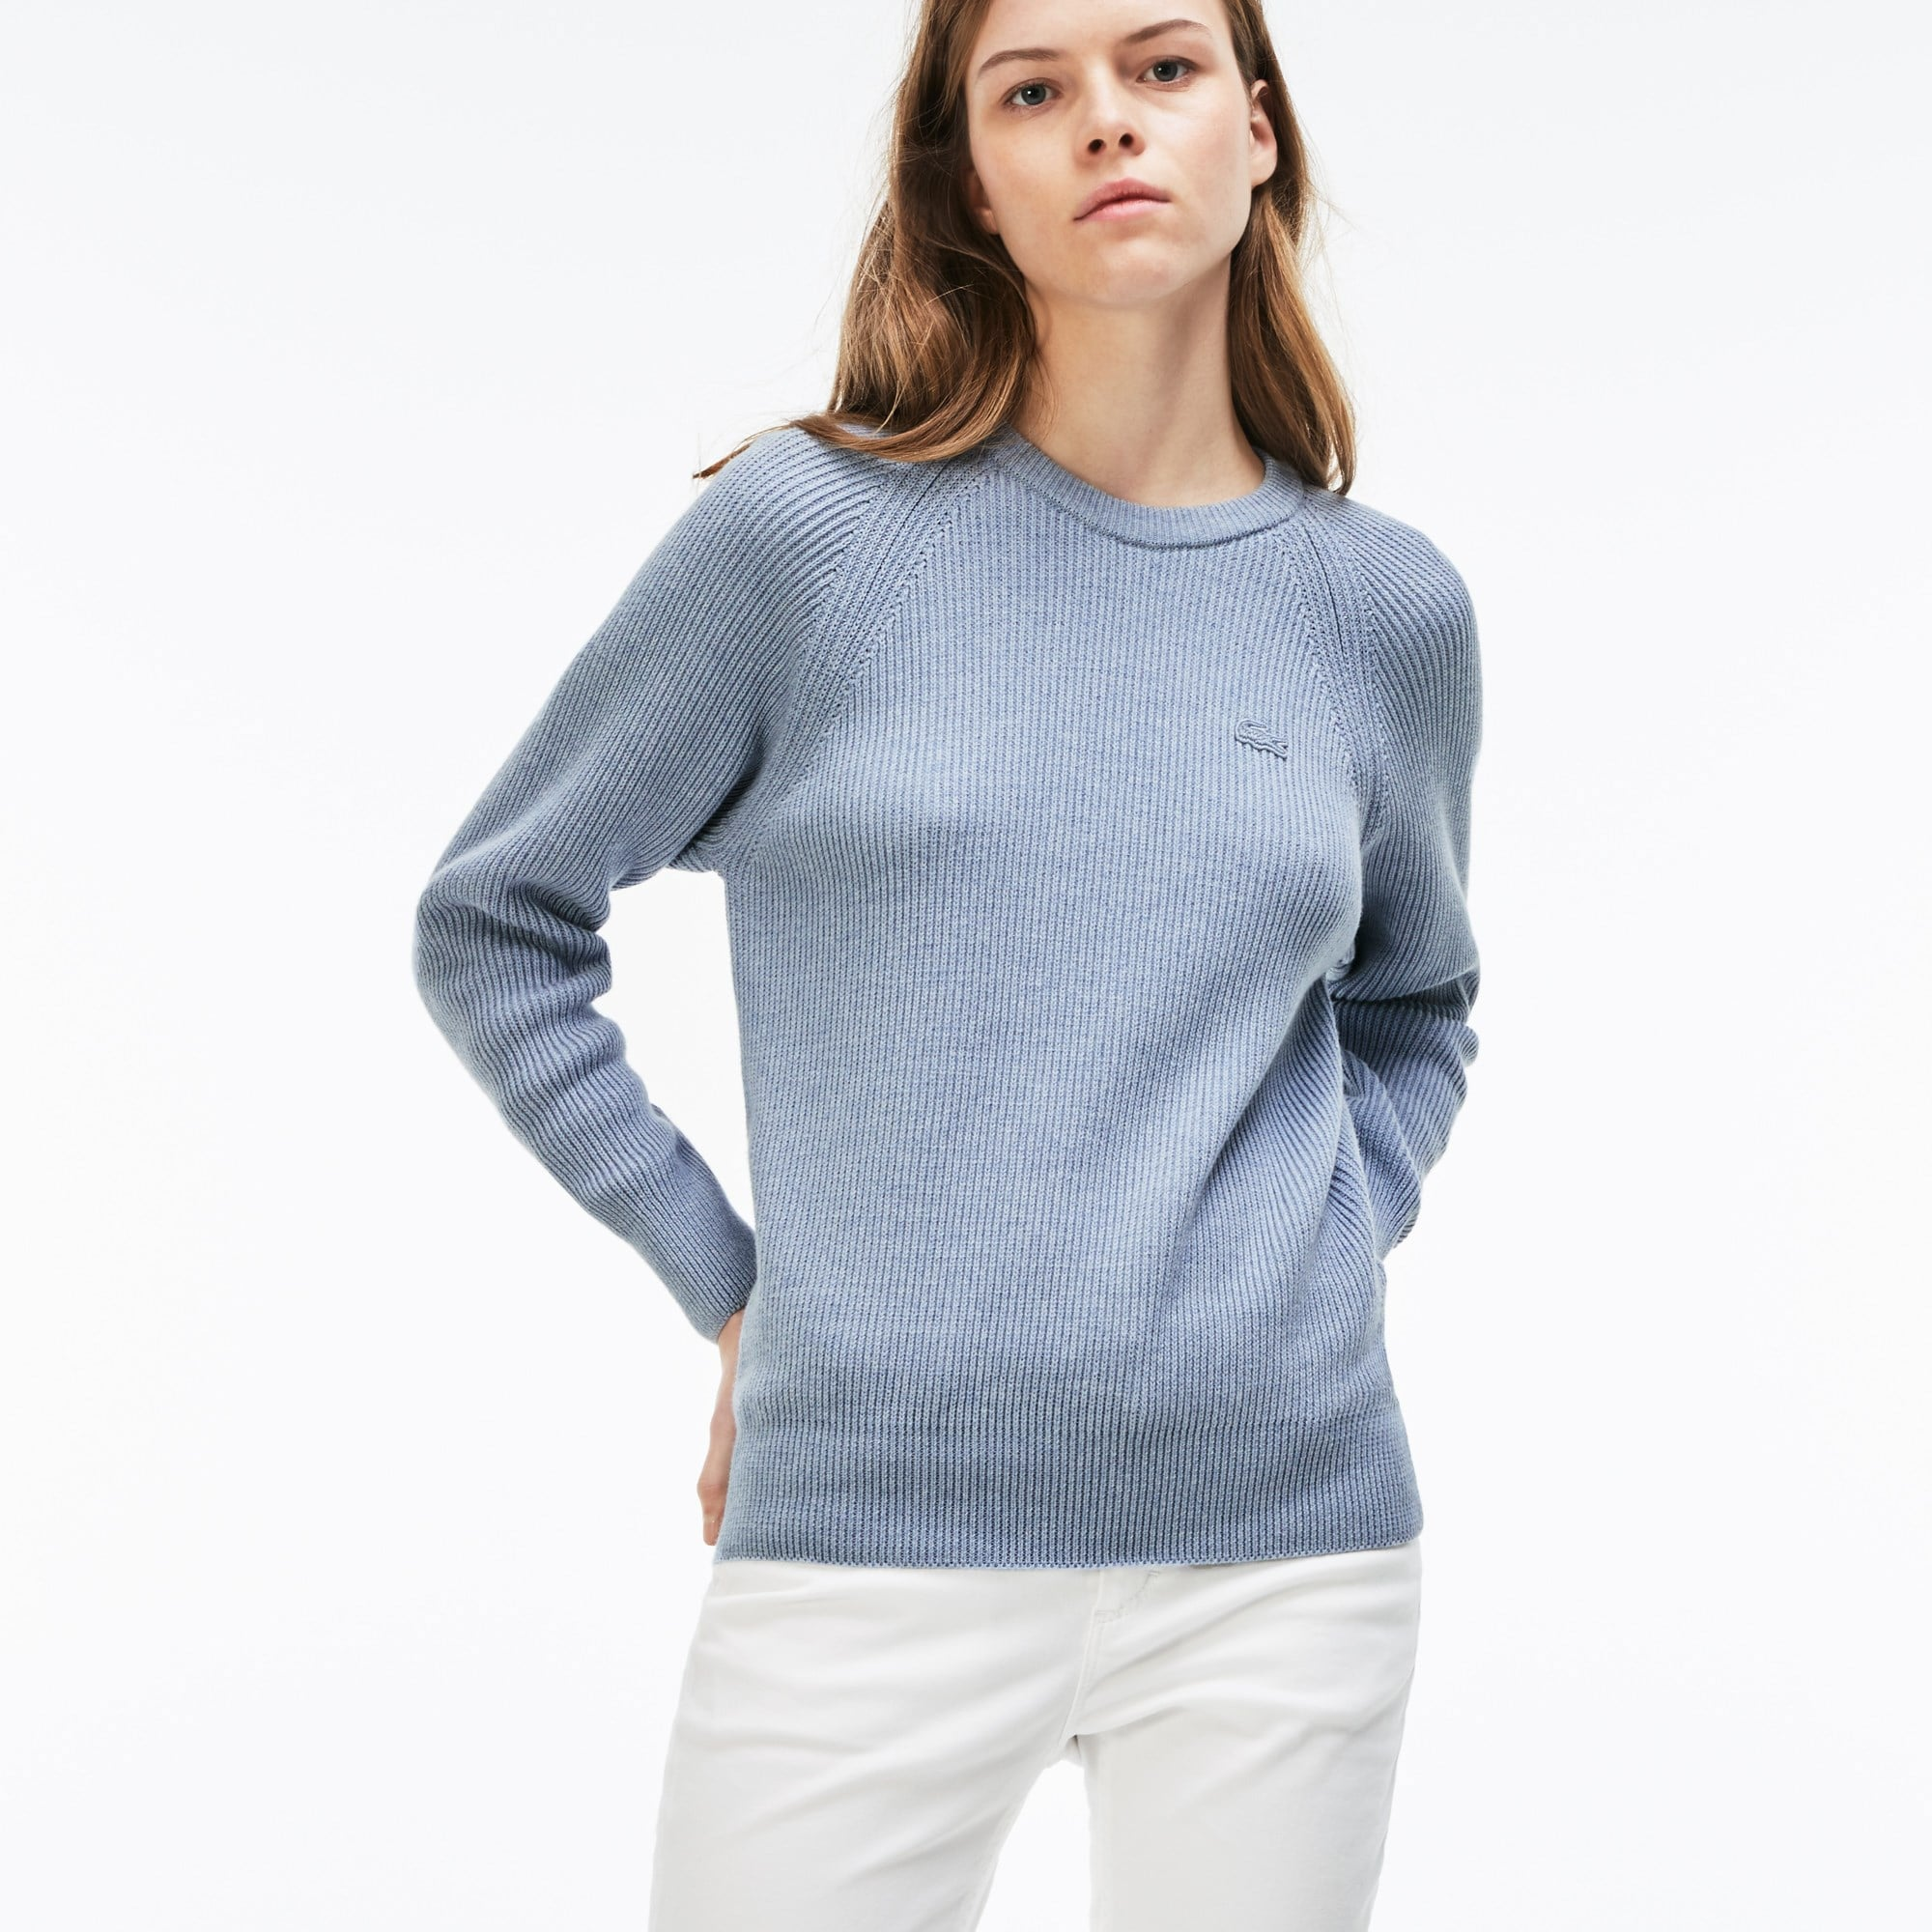 Women's Crew Neck Ribbed Cotton And Wool Sweater